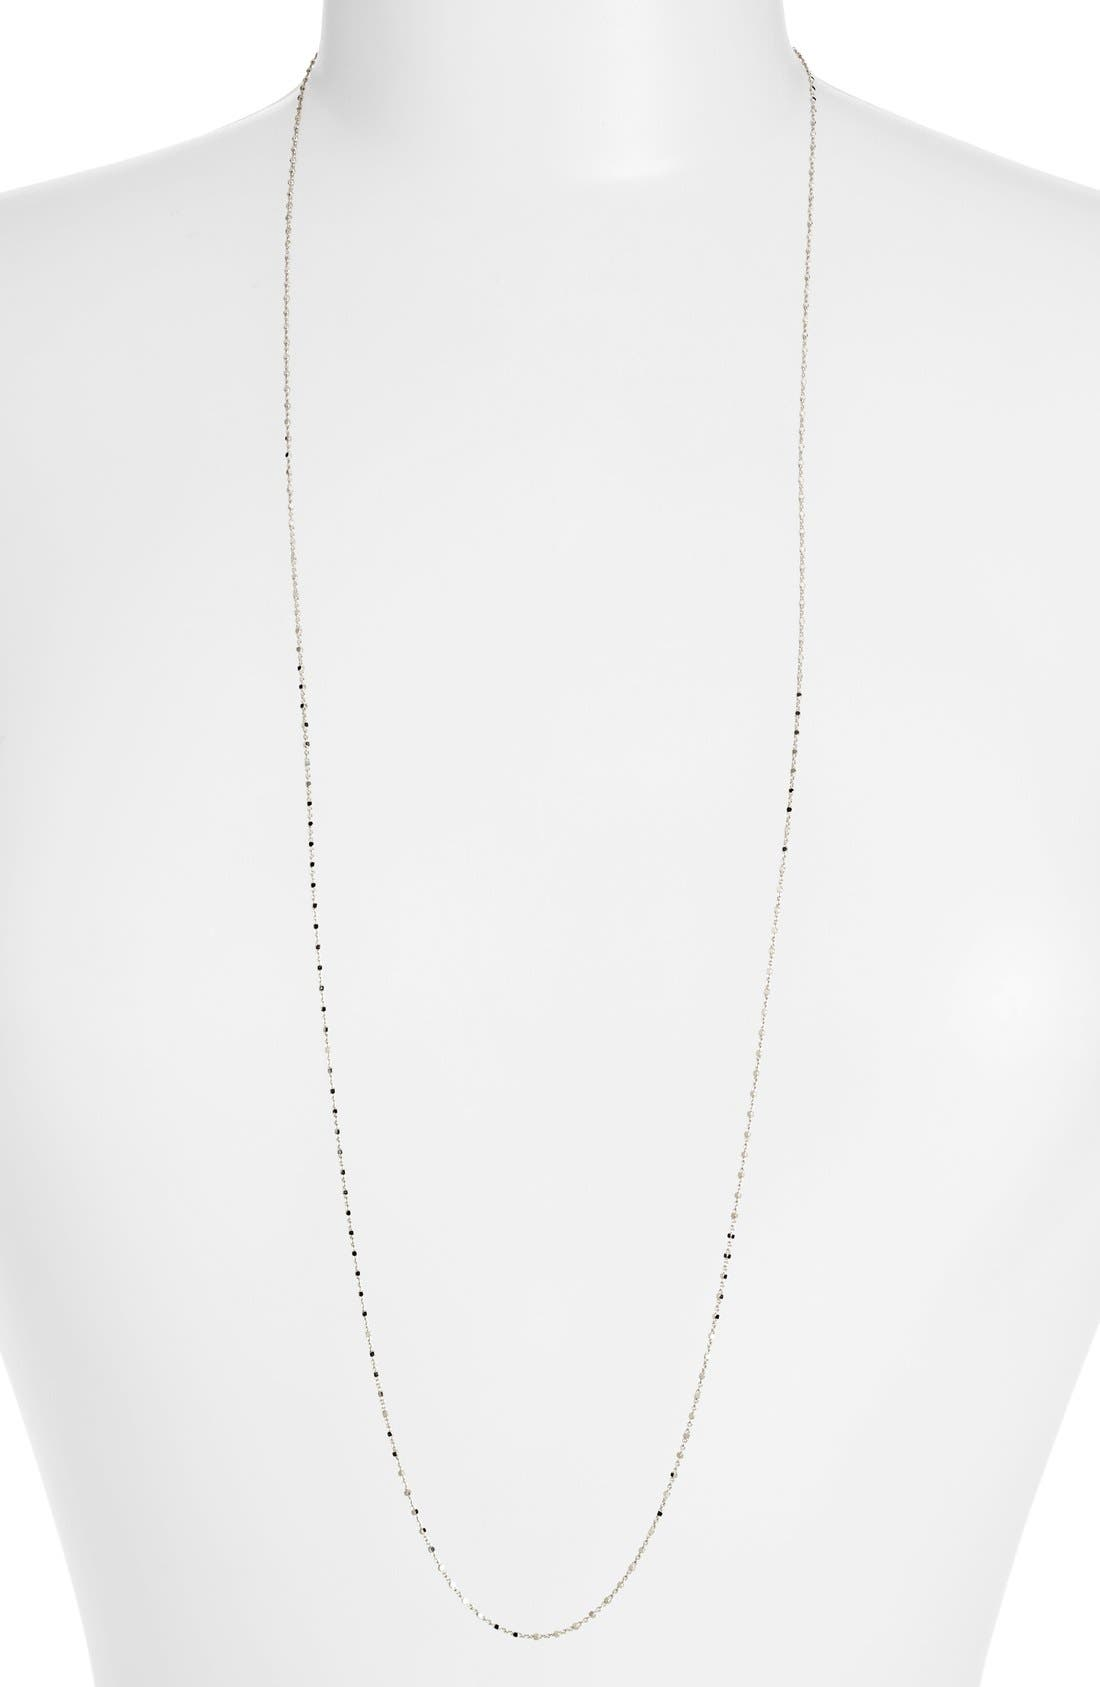 BONY LEVY Beaded Chain Long Necklace